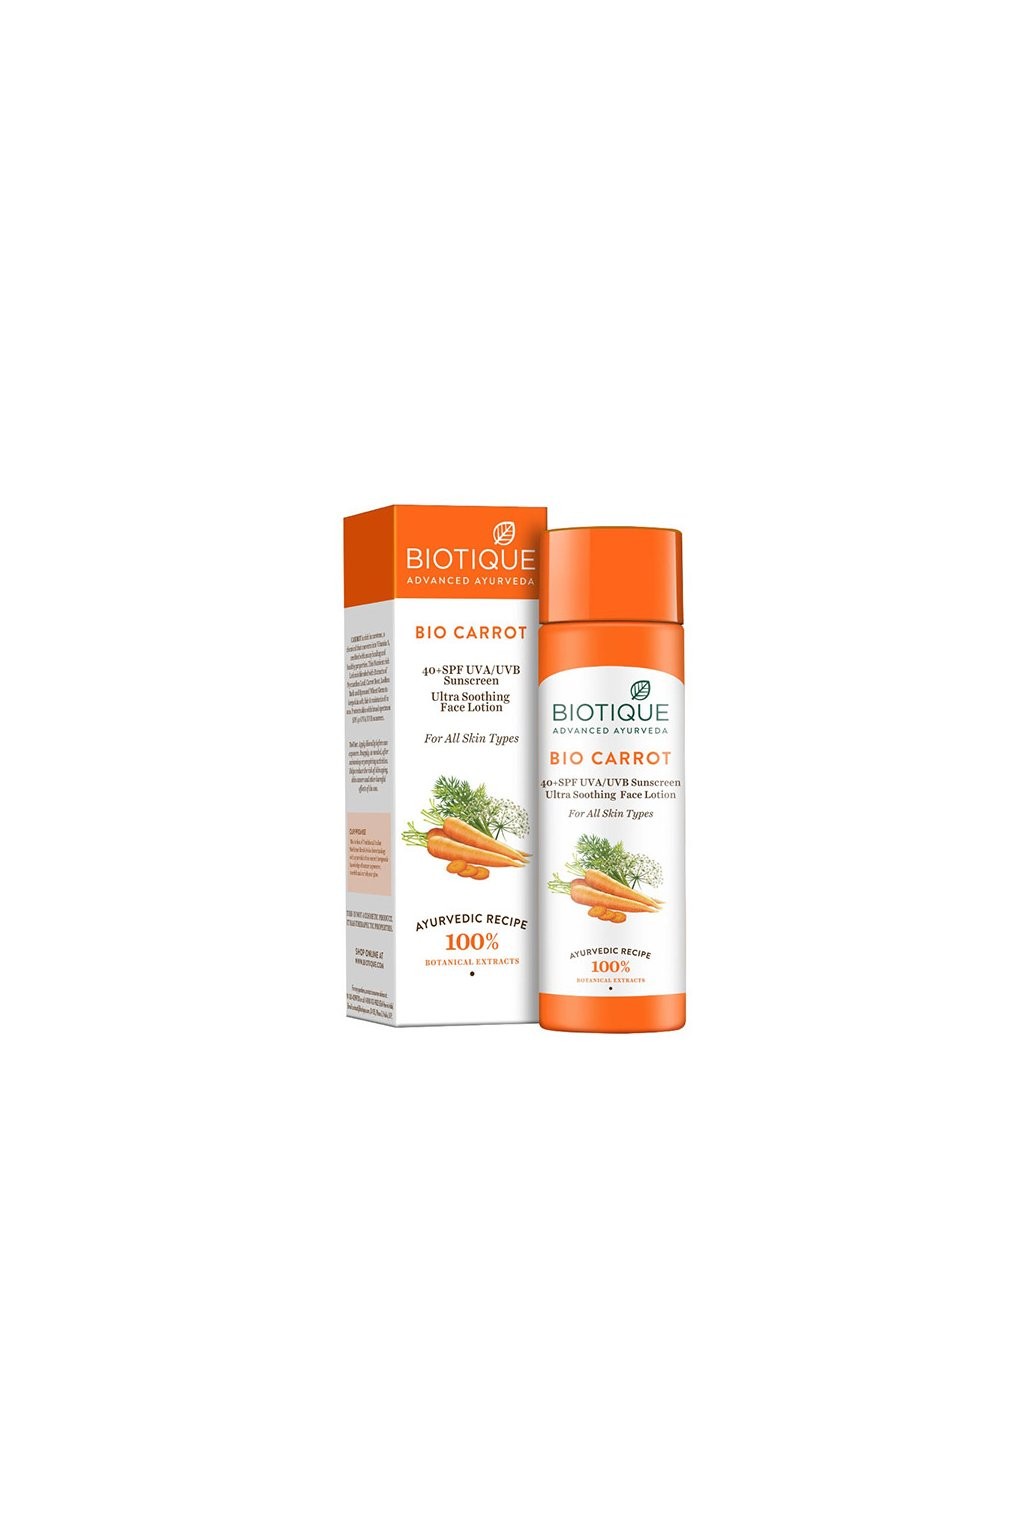 Bio carrot lotion SPF 40 , 120 ml[3433]